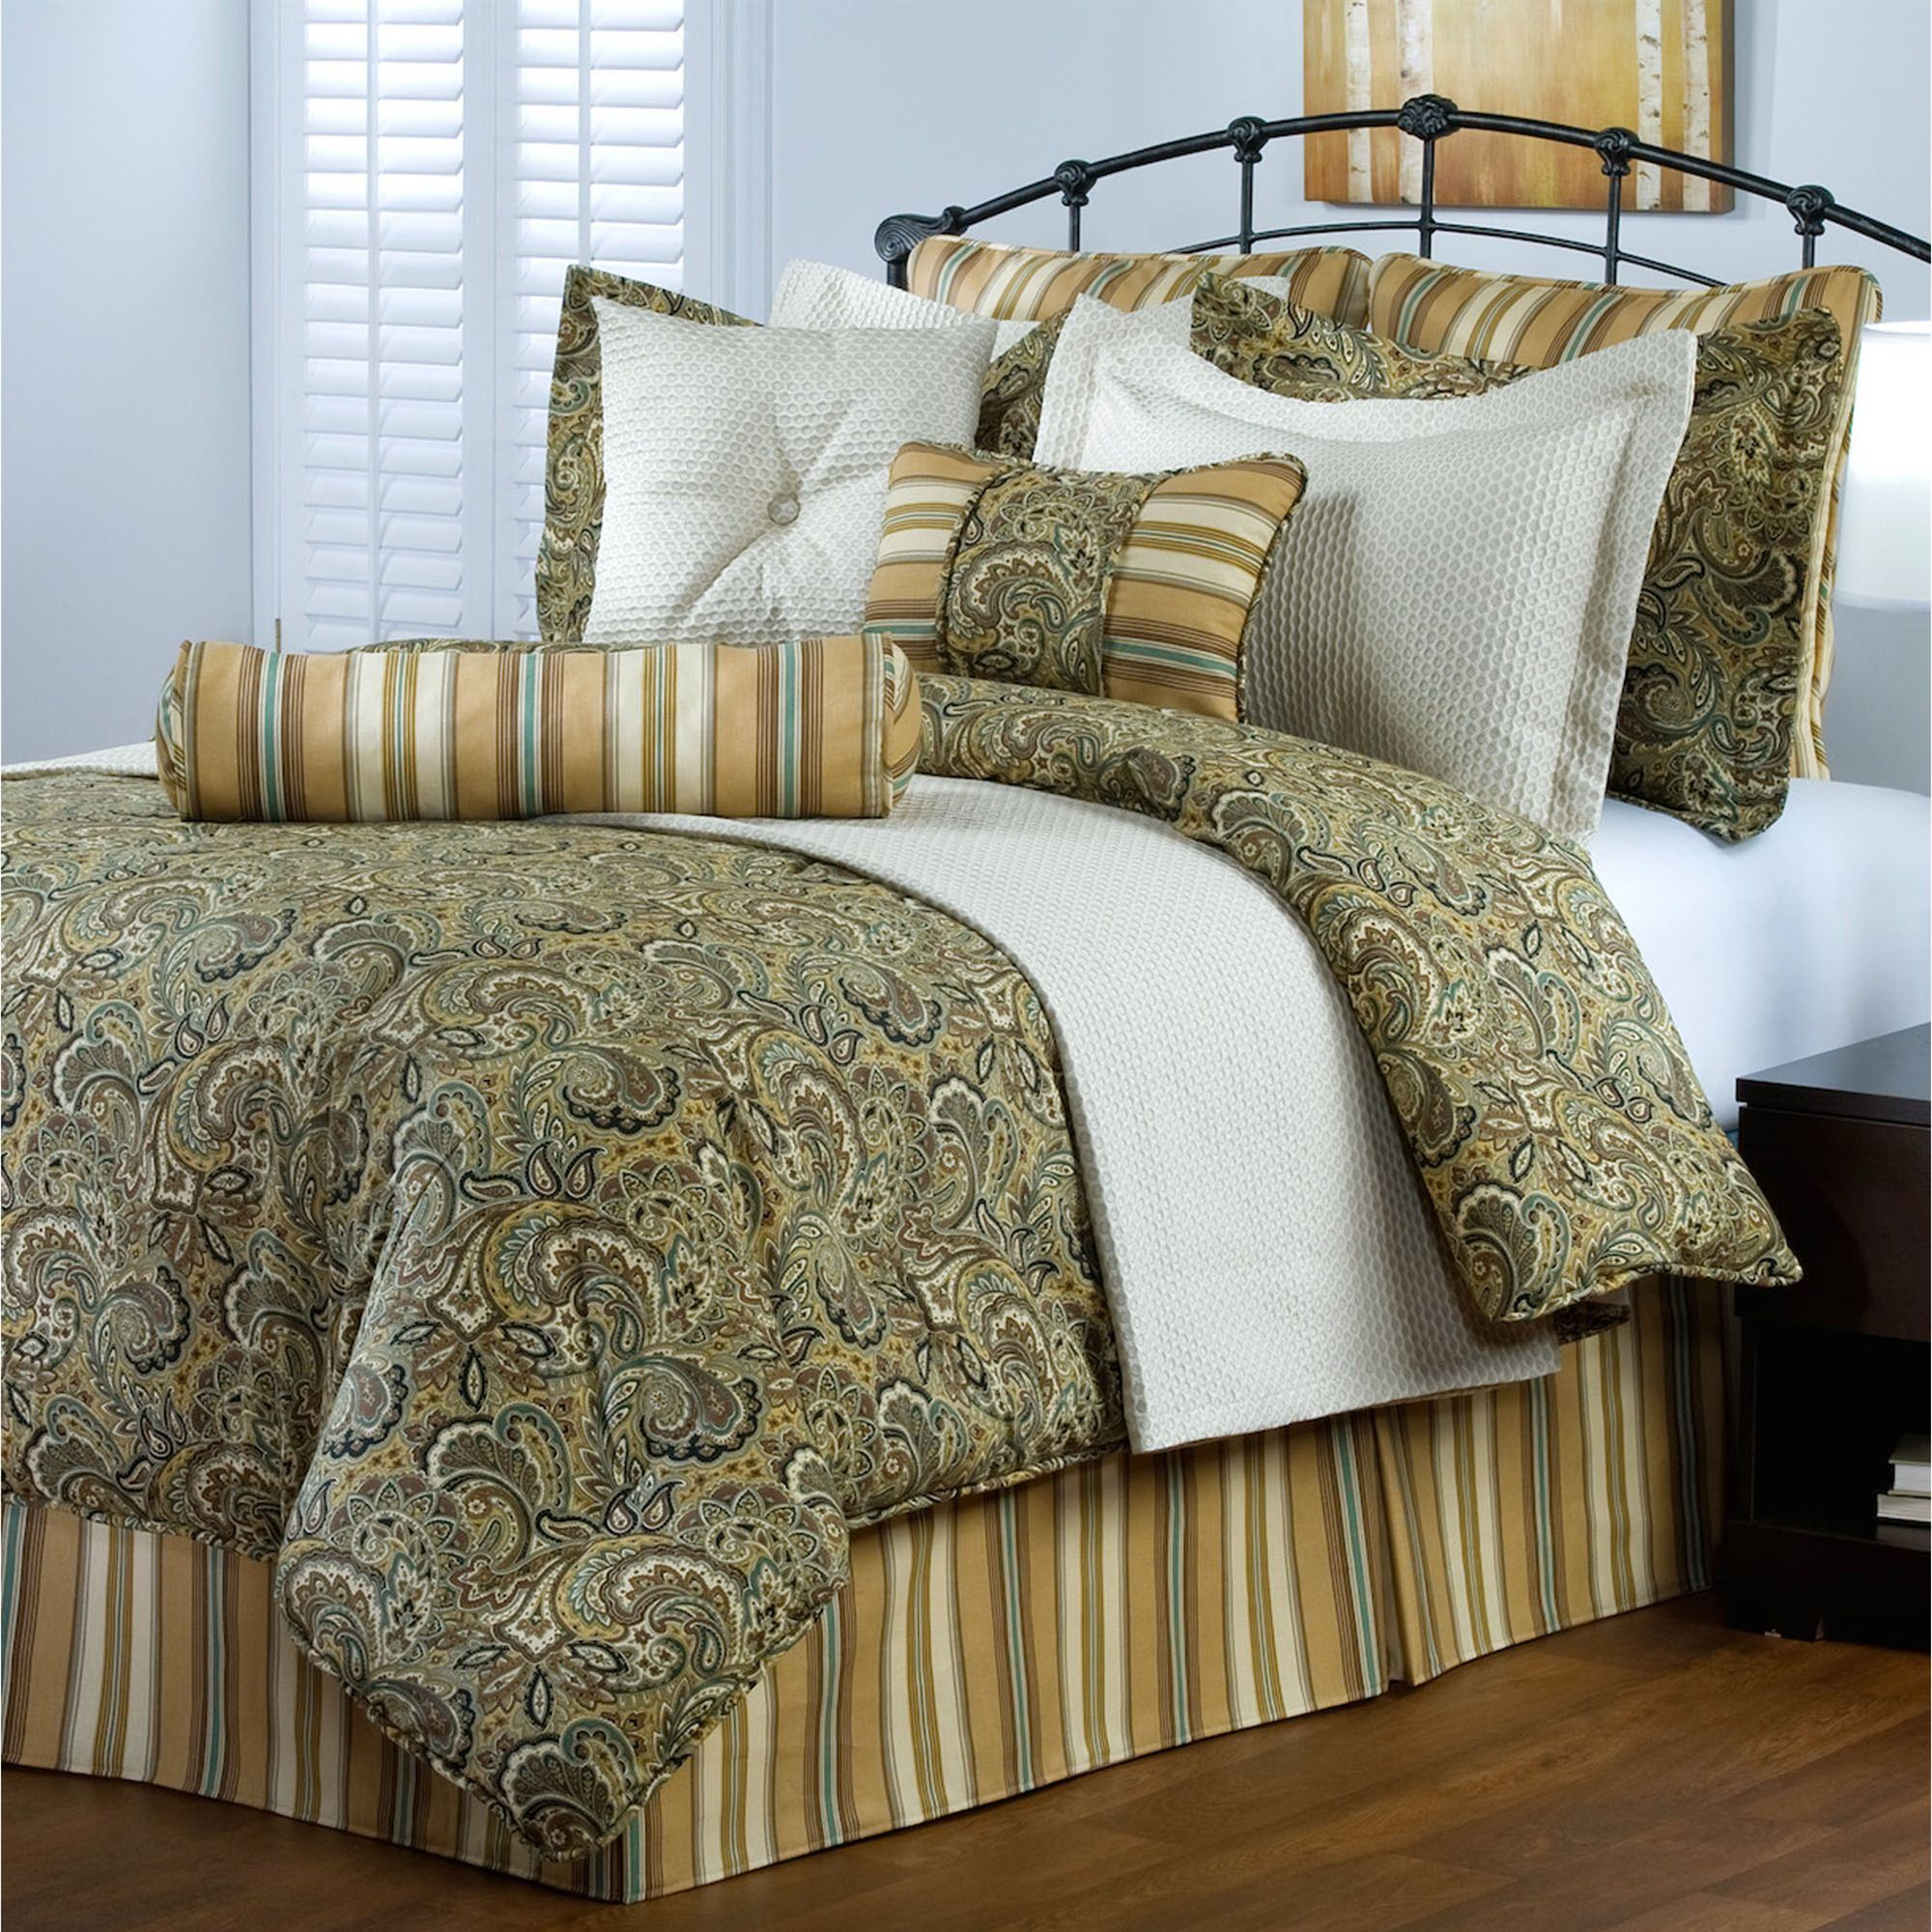 s quilts bed bath paisley bedding quilt duvet collections tommy macy cover comforter sets hilfiger pin canyon and